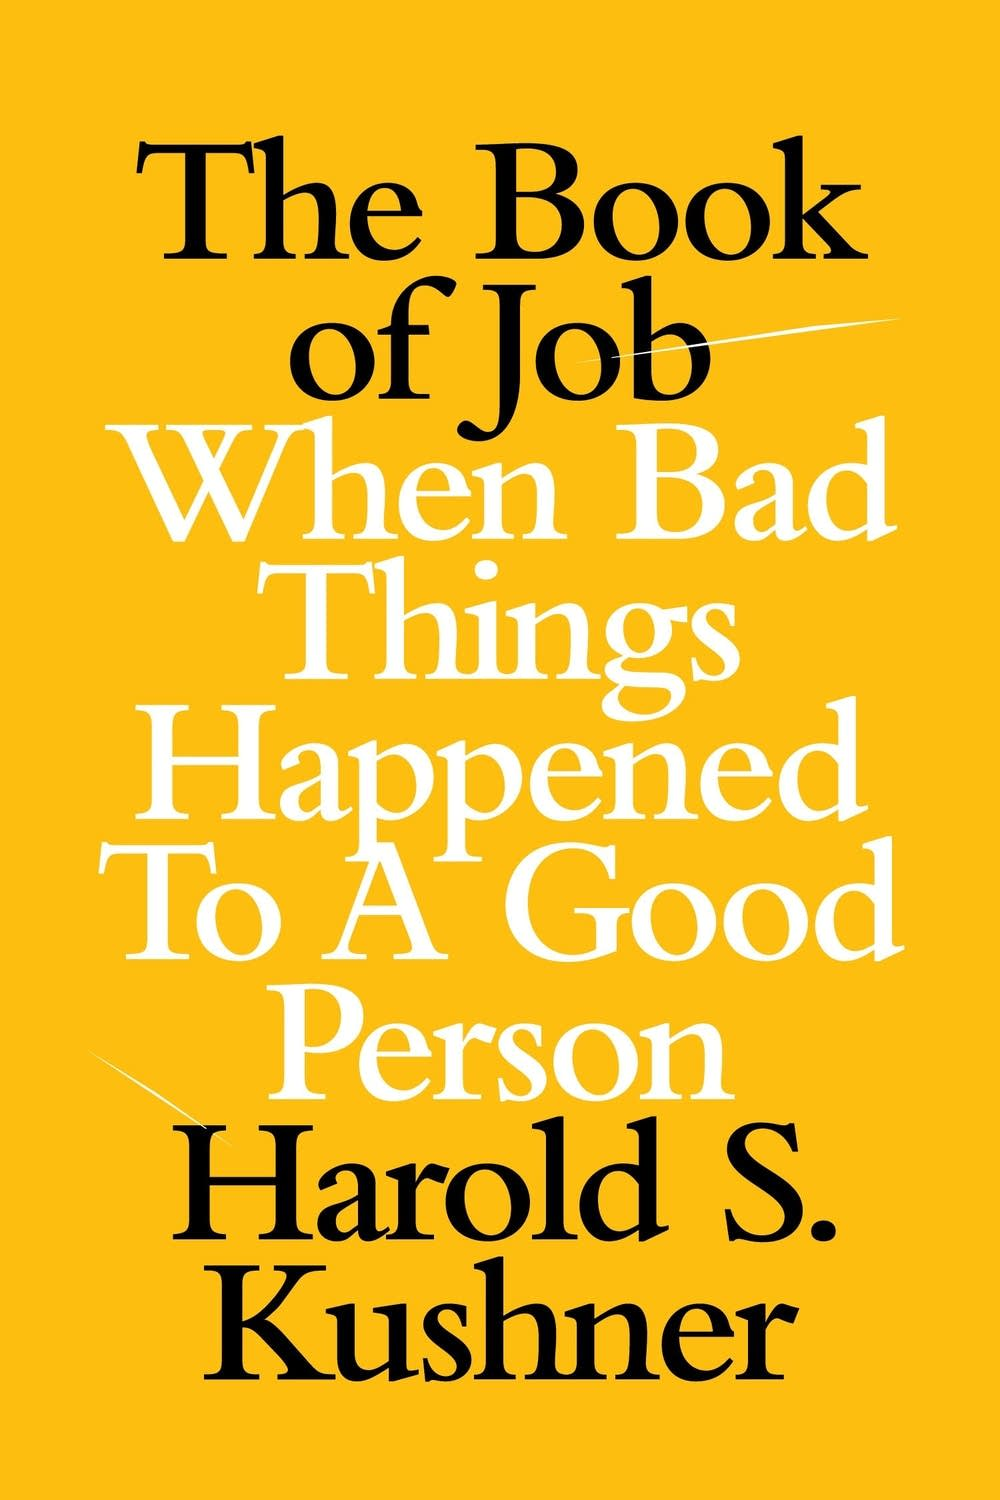 'The Book of Job' by Harold S. Kushner